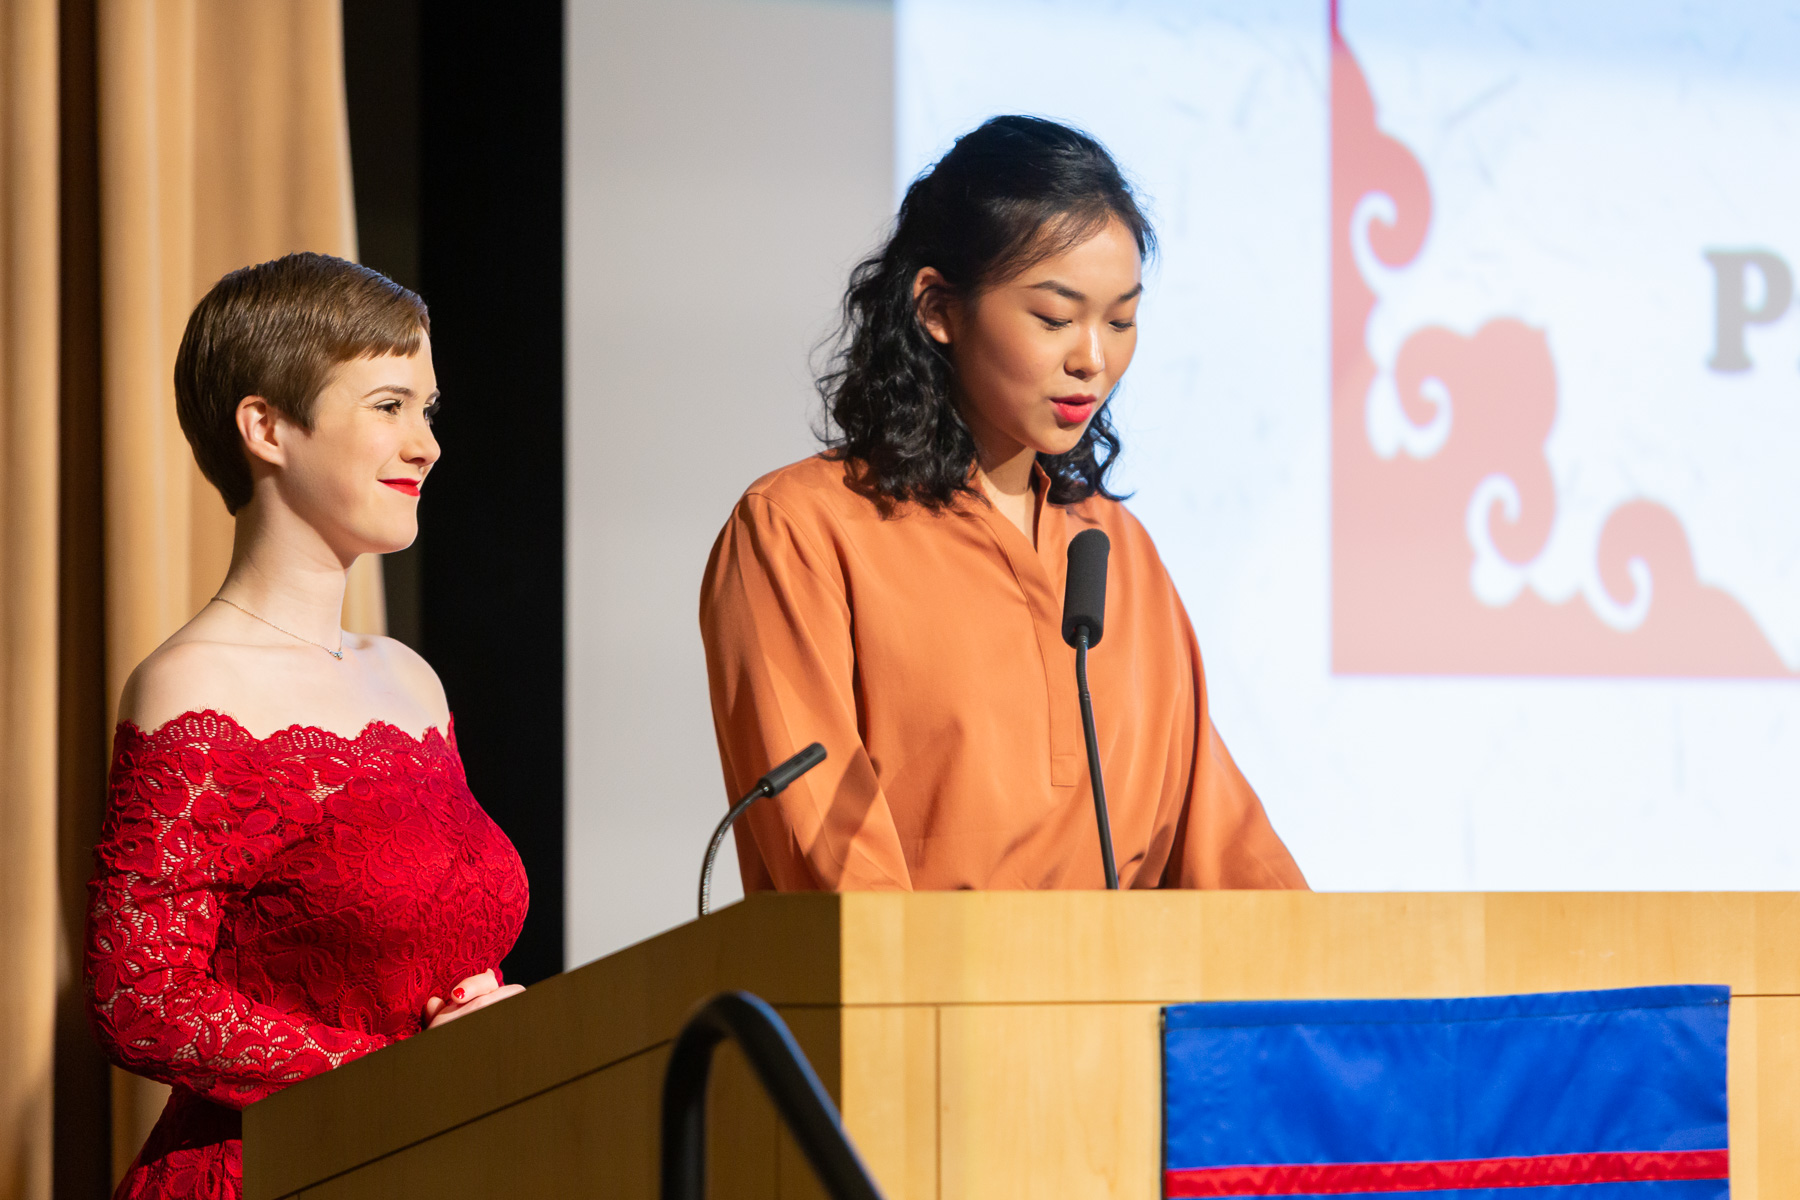 Amanda Stocchetti, president of the DePaul Chinese Studies Association, left, and Yi (Joy) Fang, president of the DePaul Chinese Students and Scholars Association, welcome guests to the event. (DePaul University/Randall Spriggs)